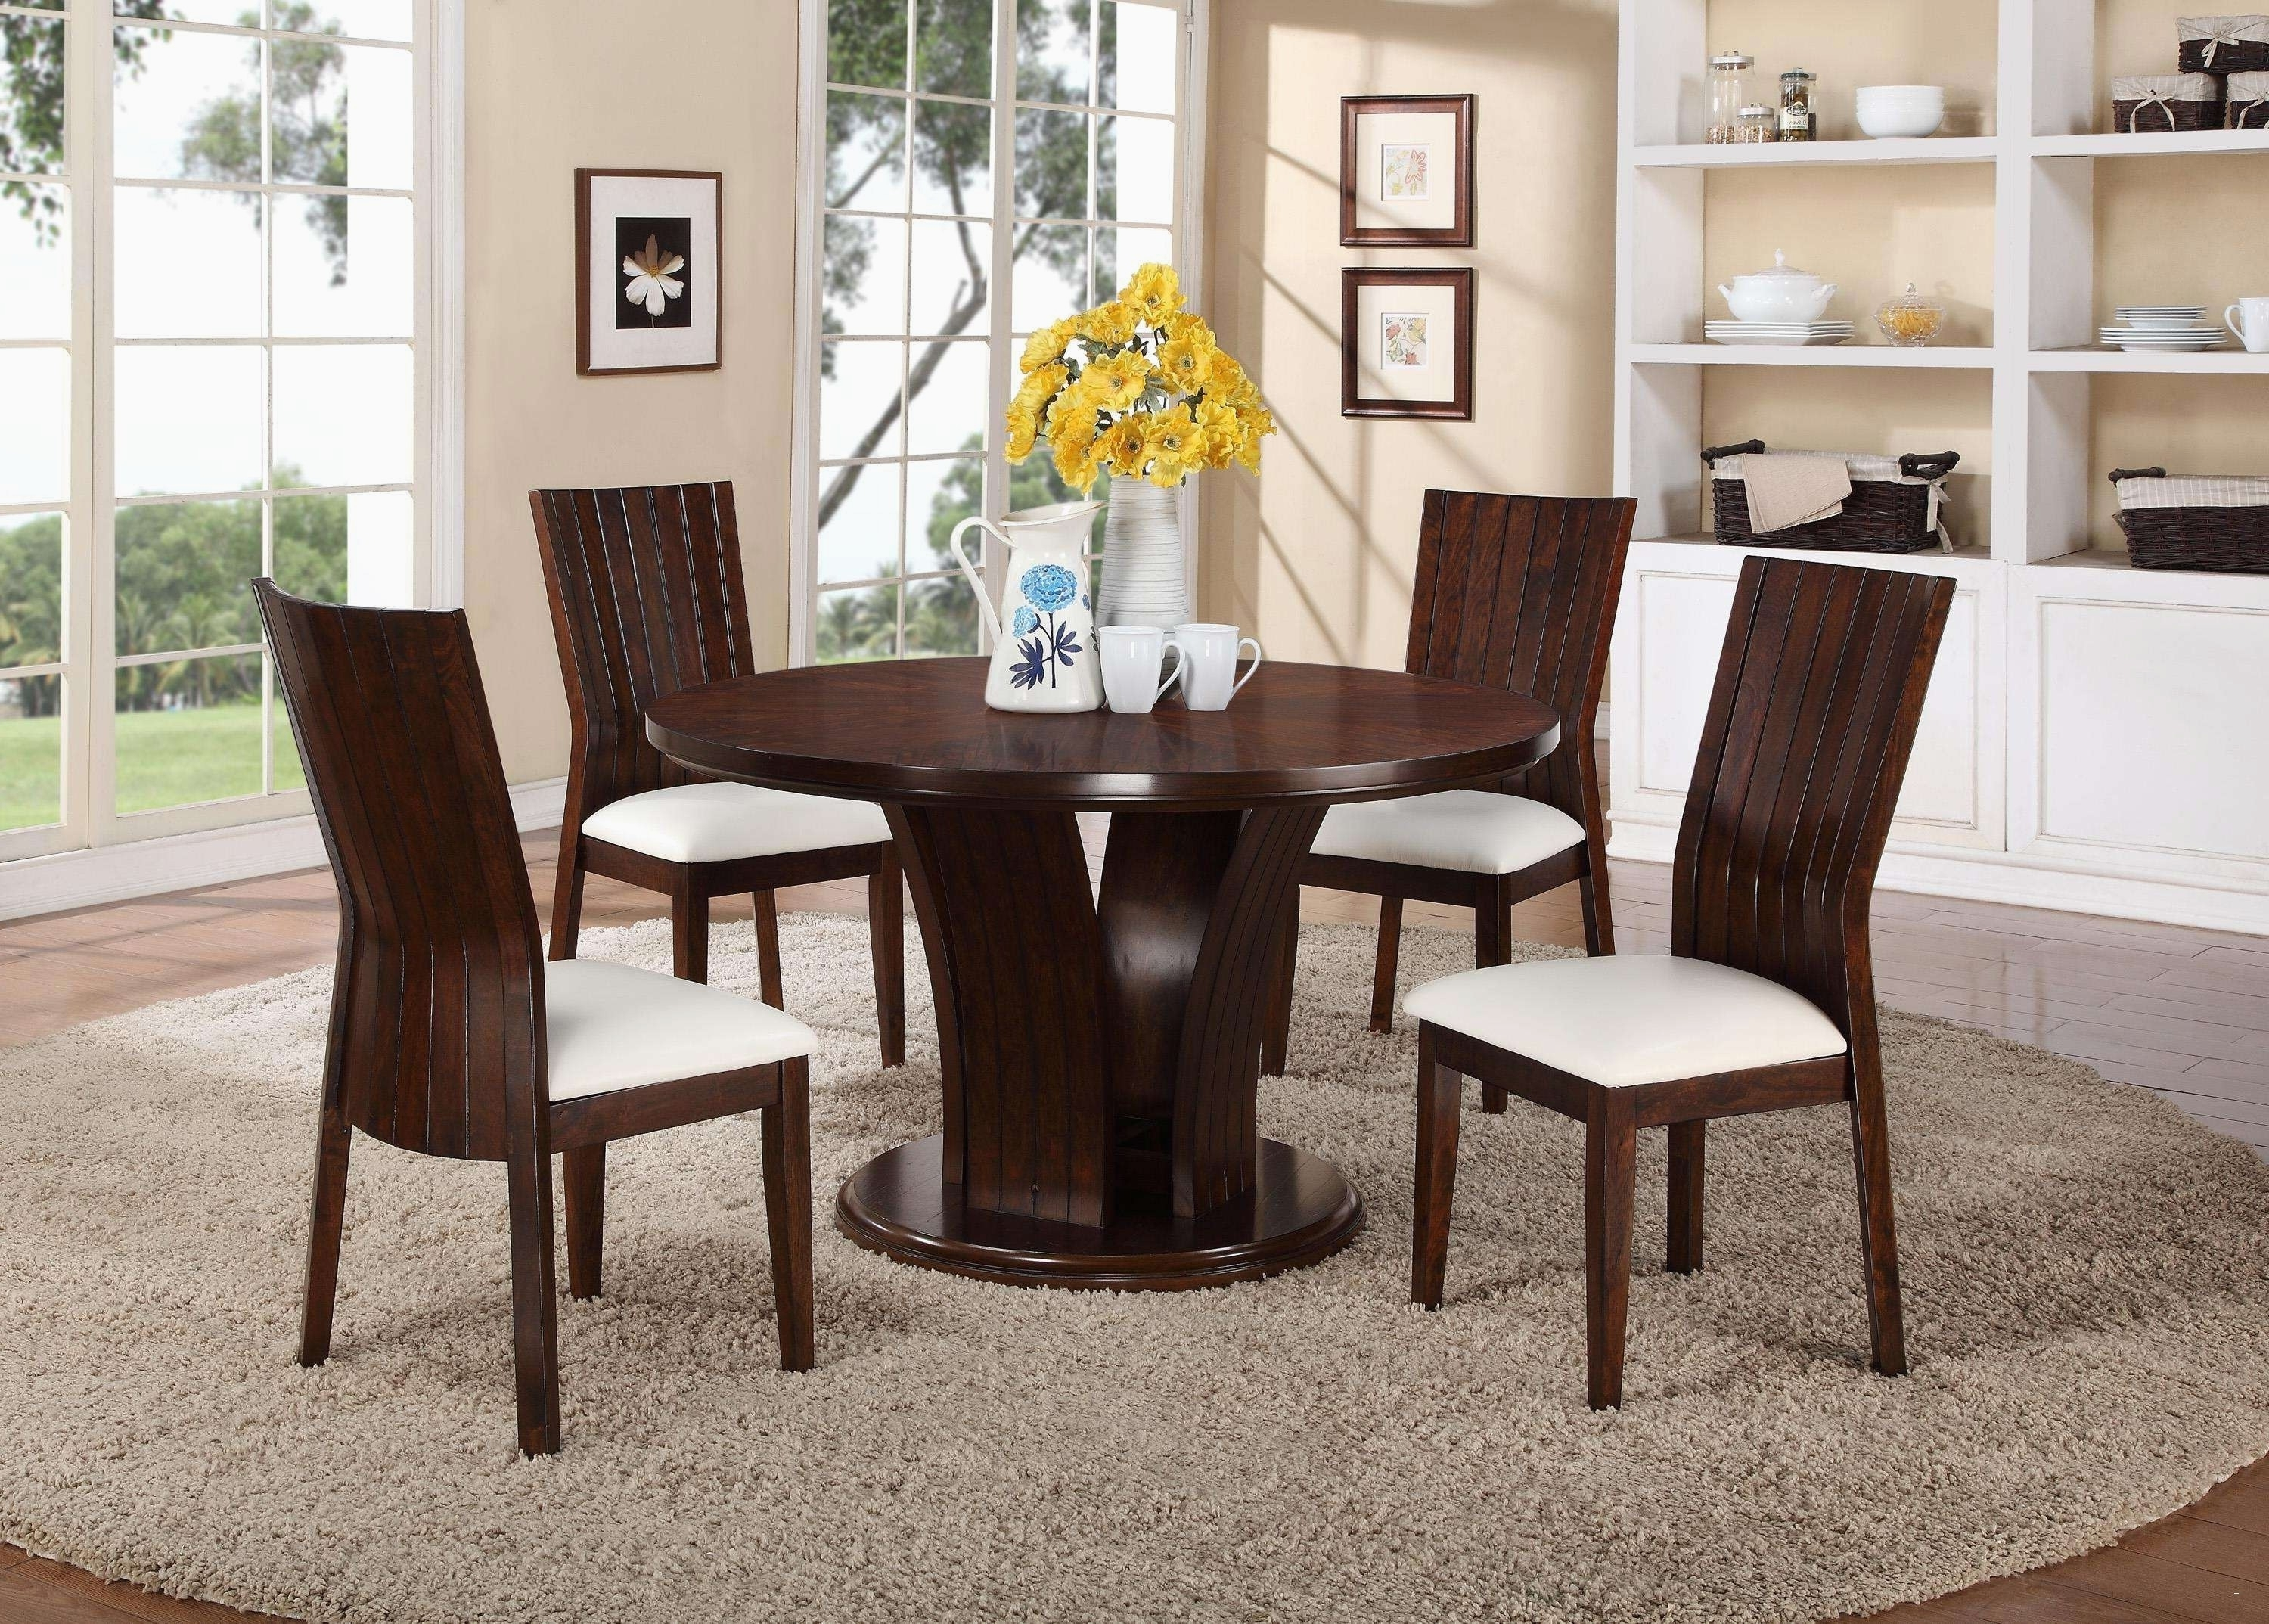 6 Seat Round Dining Tables With Most Popular Round Dining Tables For 8 Inspirational 6 Seat Round Dining Table (View 10 of 25)